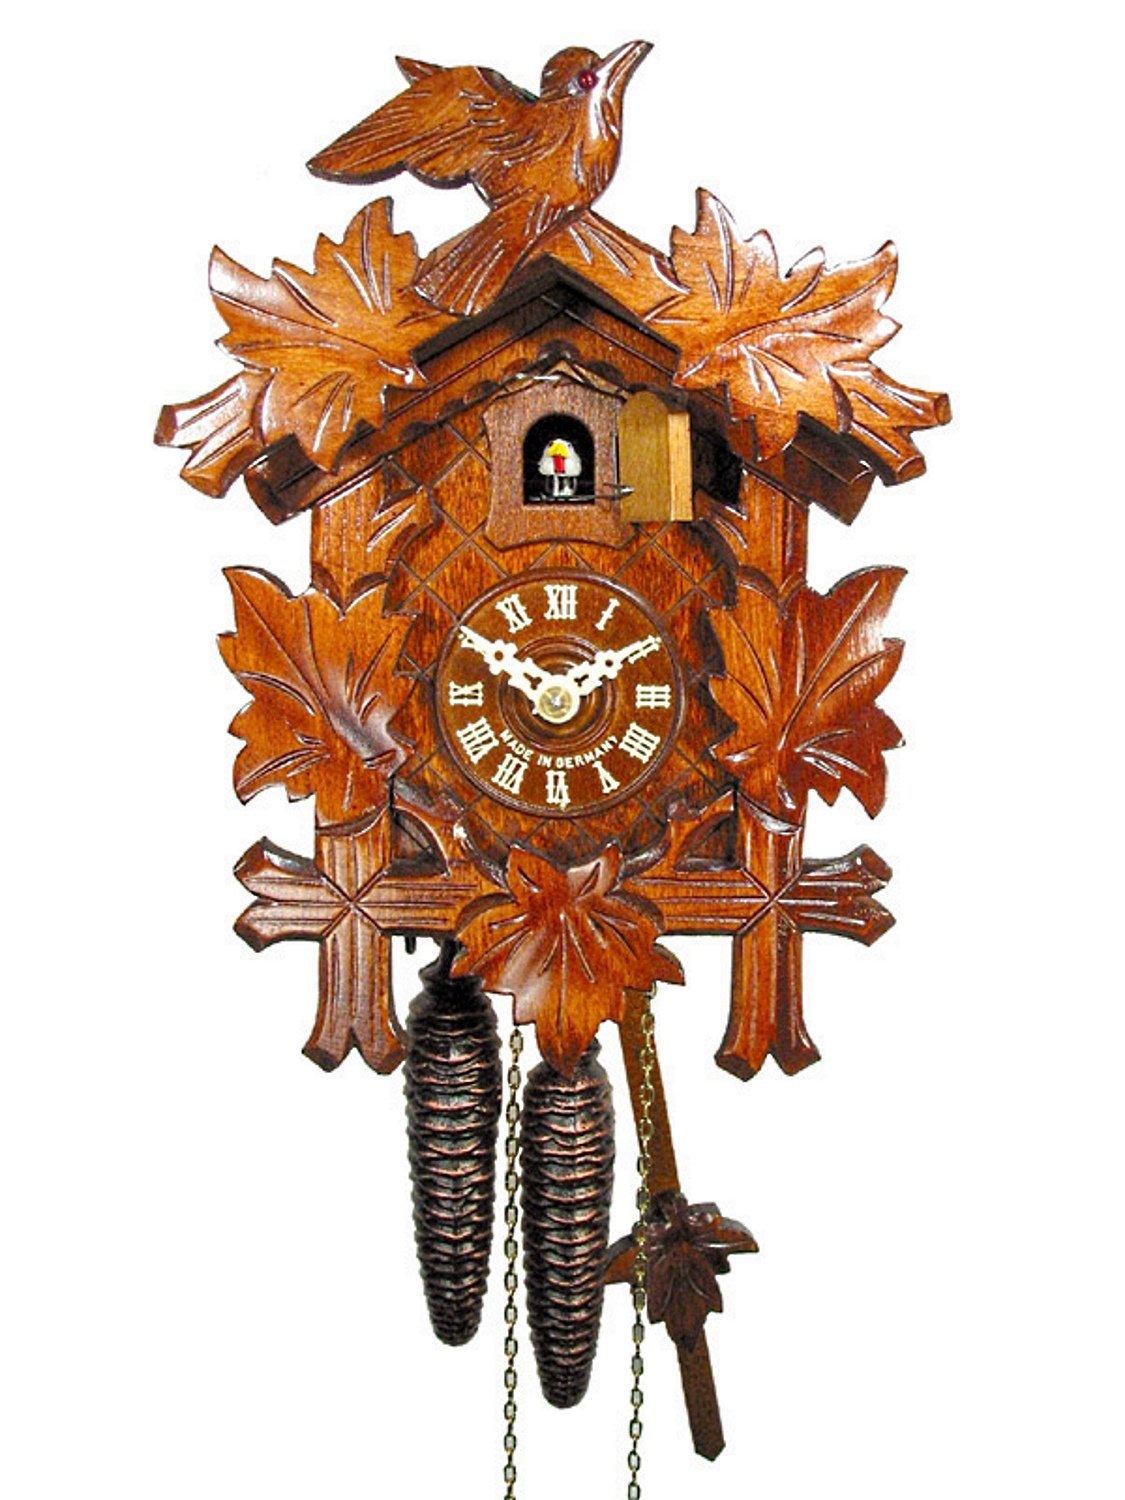 Original German cuckoo-clock (certified), mechanical 1-day movement with 1 bird and 5 leaves, coo-coo clocks from the Black-Forest, Germany by DV-Marketing, Schwarzwälder Kuckucksuhren by DV-Marketing, original Black Forest cuckoo clocks